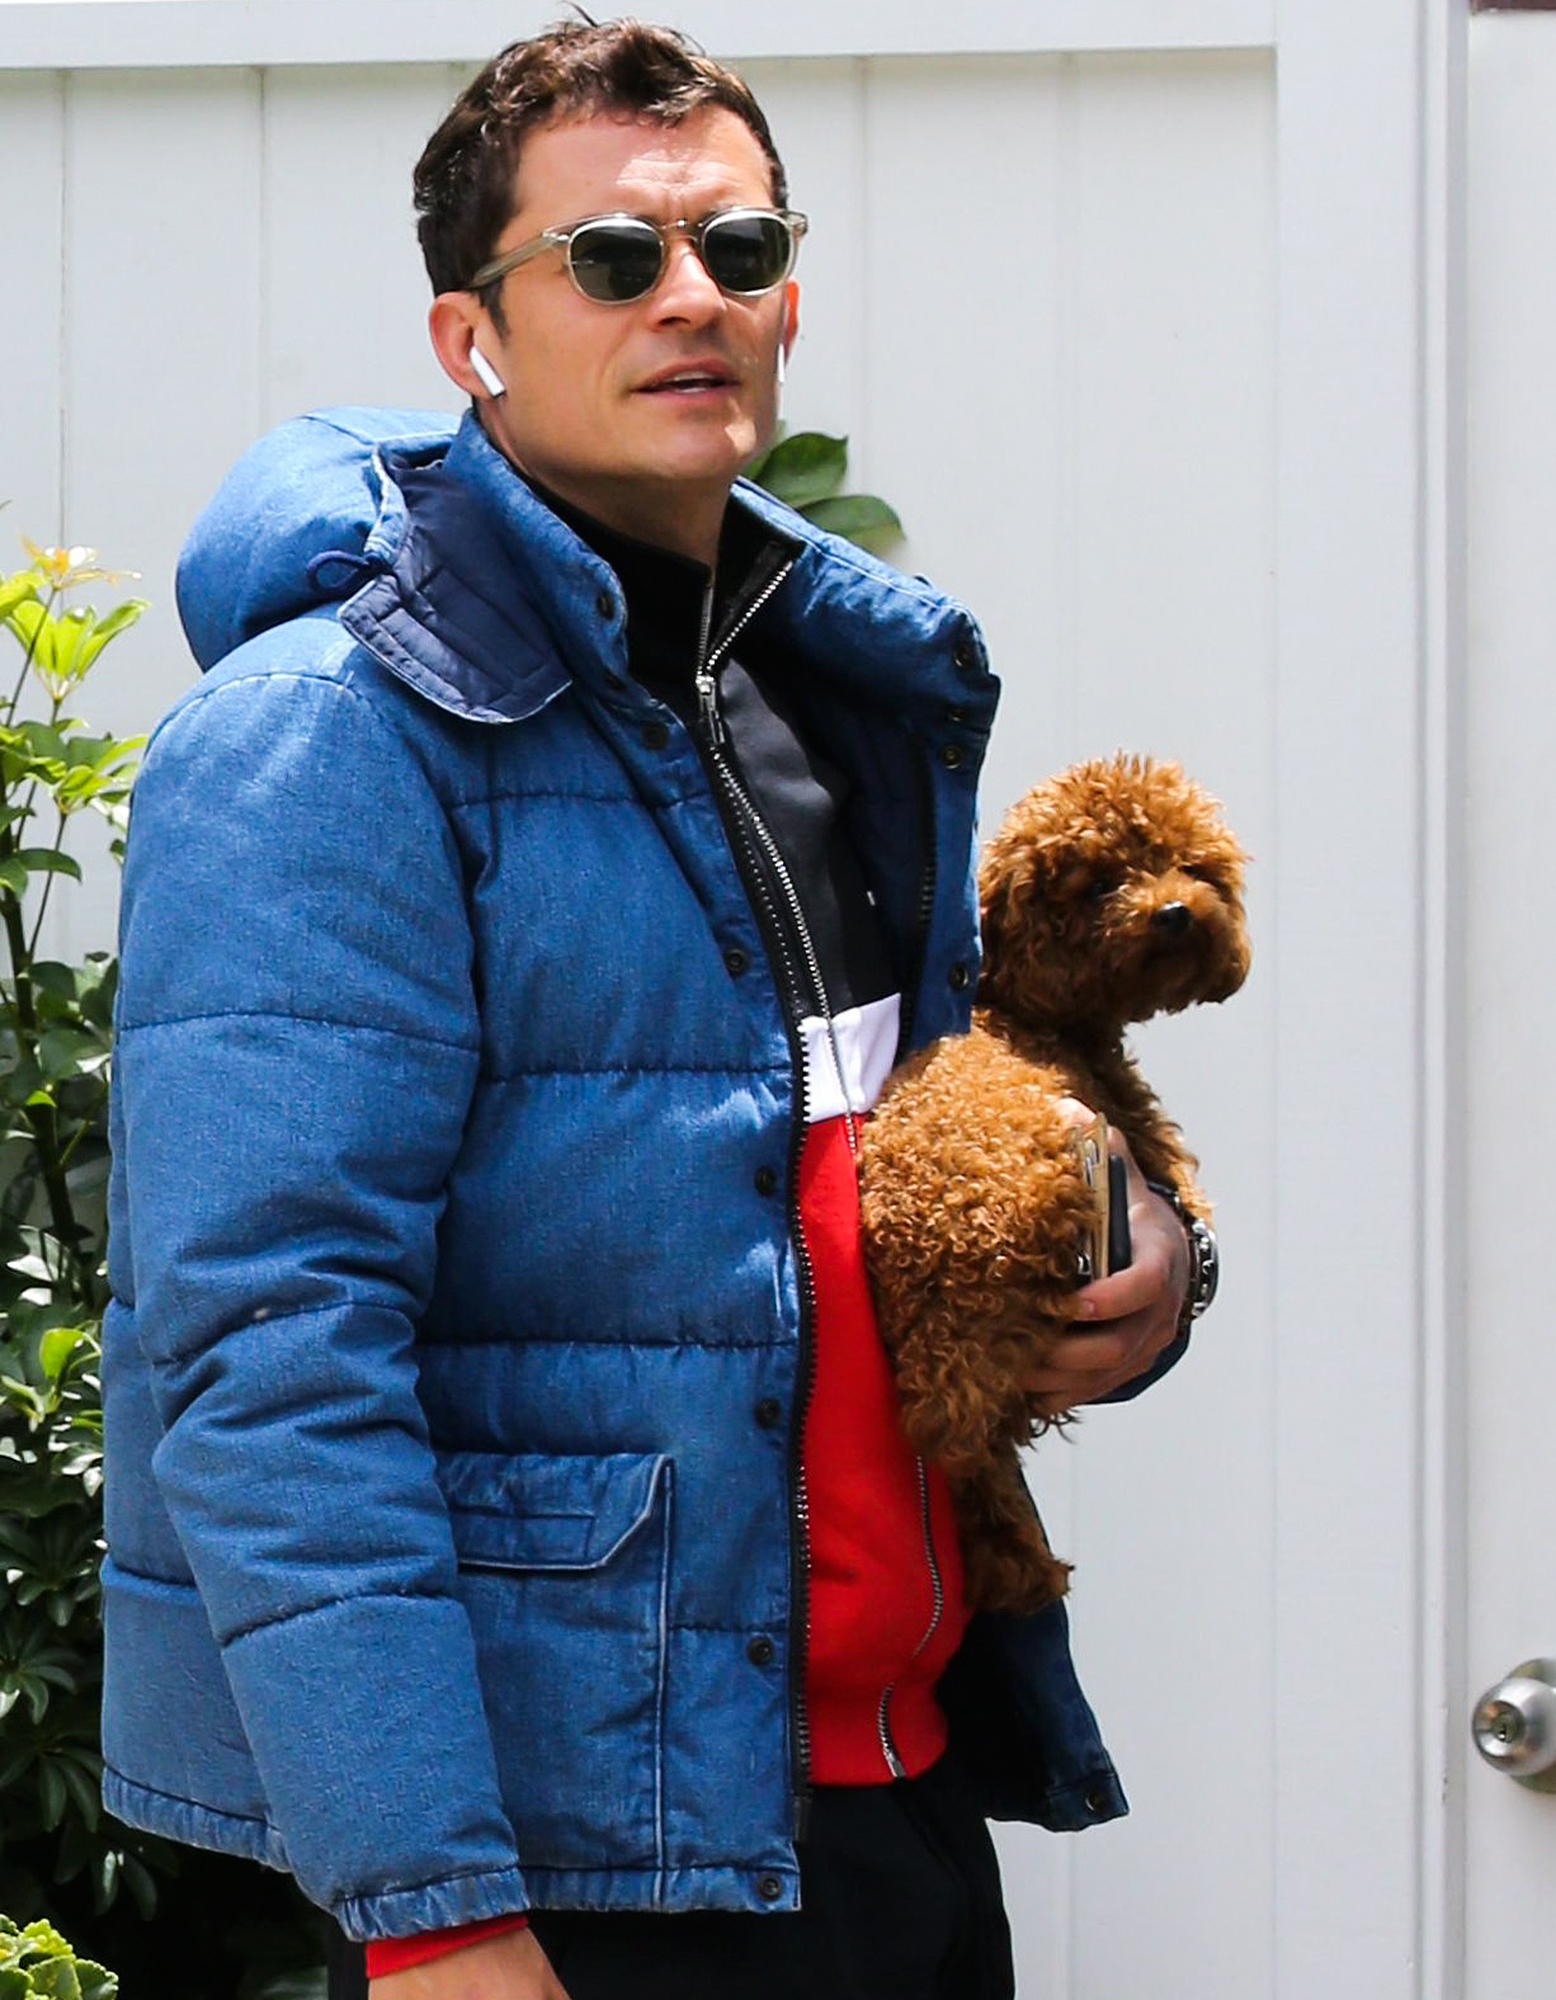 PREMIUM EXCLUSIVE Orlando Bloom Enjoying Some Company After Breakup With Katy Perry